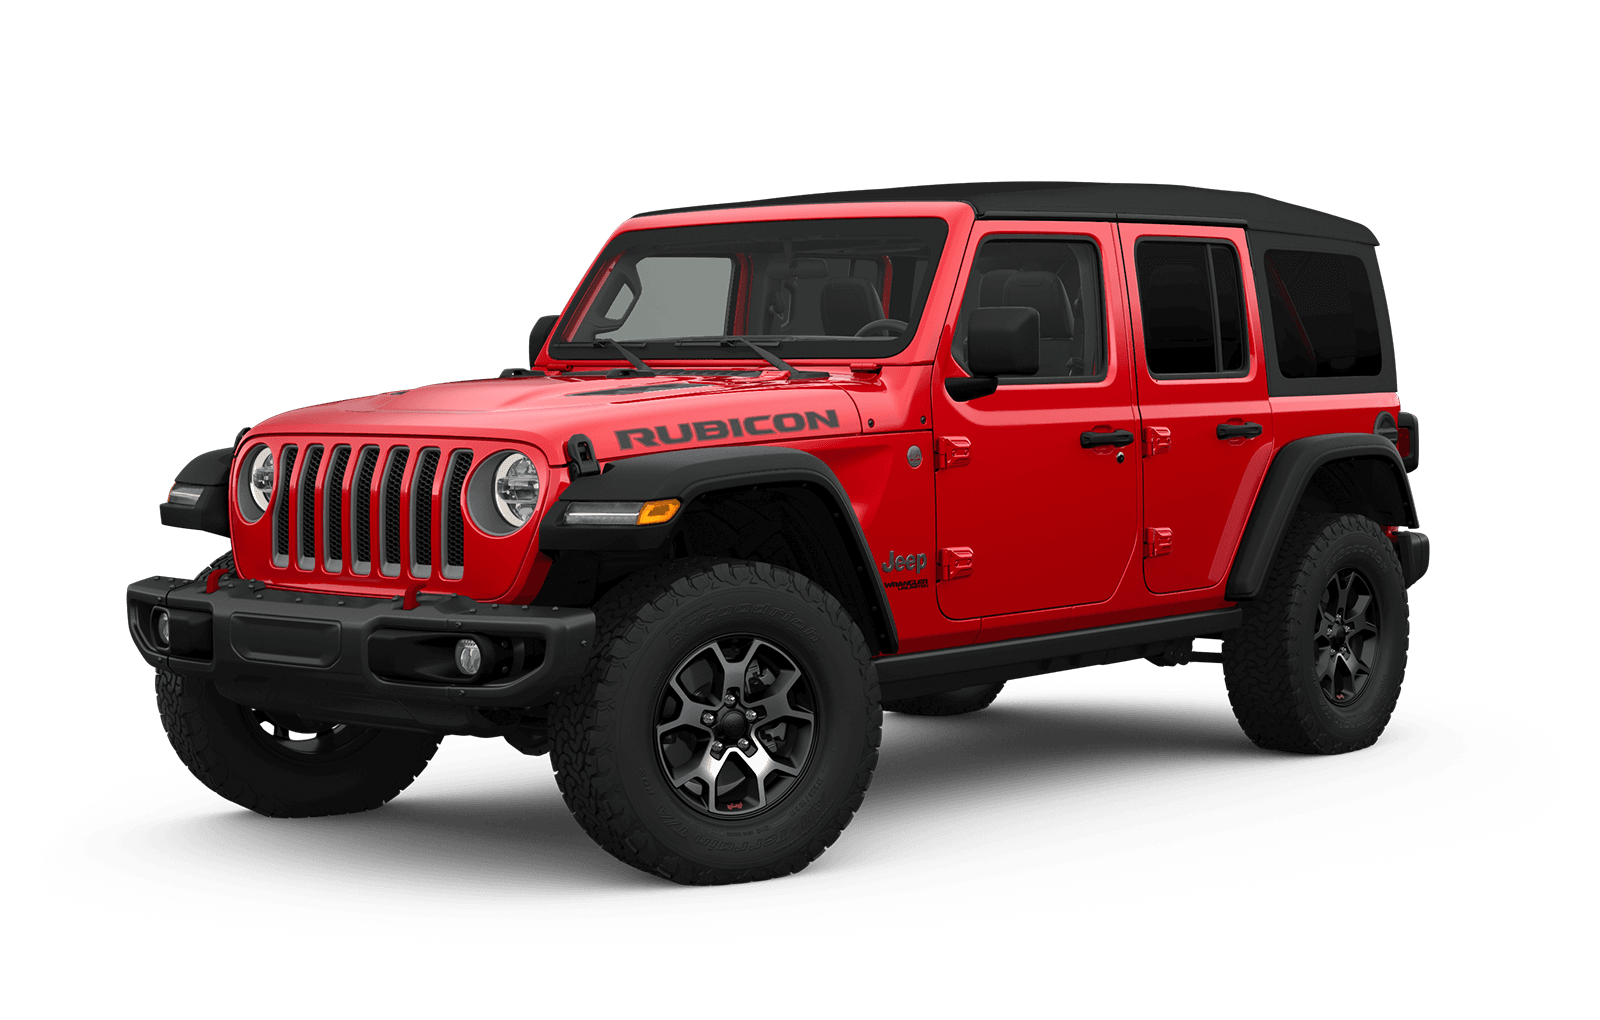 2019 Jeep Wrangler Full View in red with Wheels